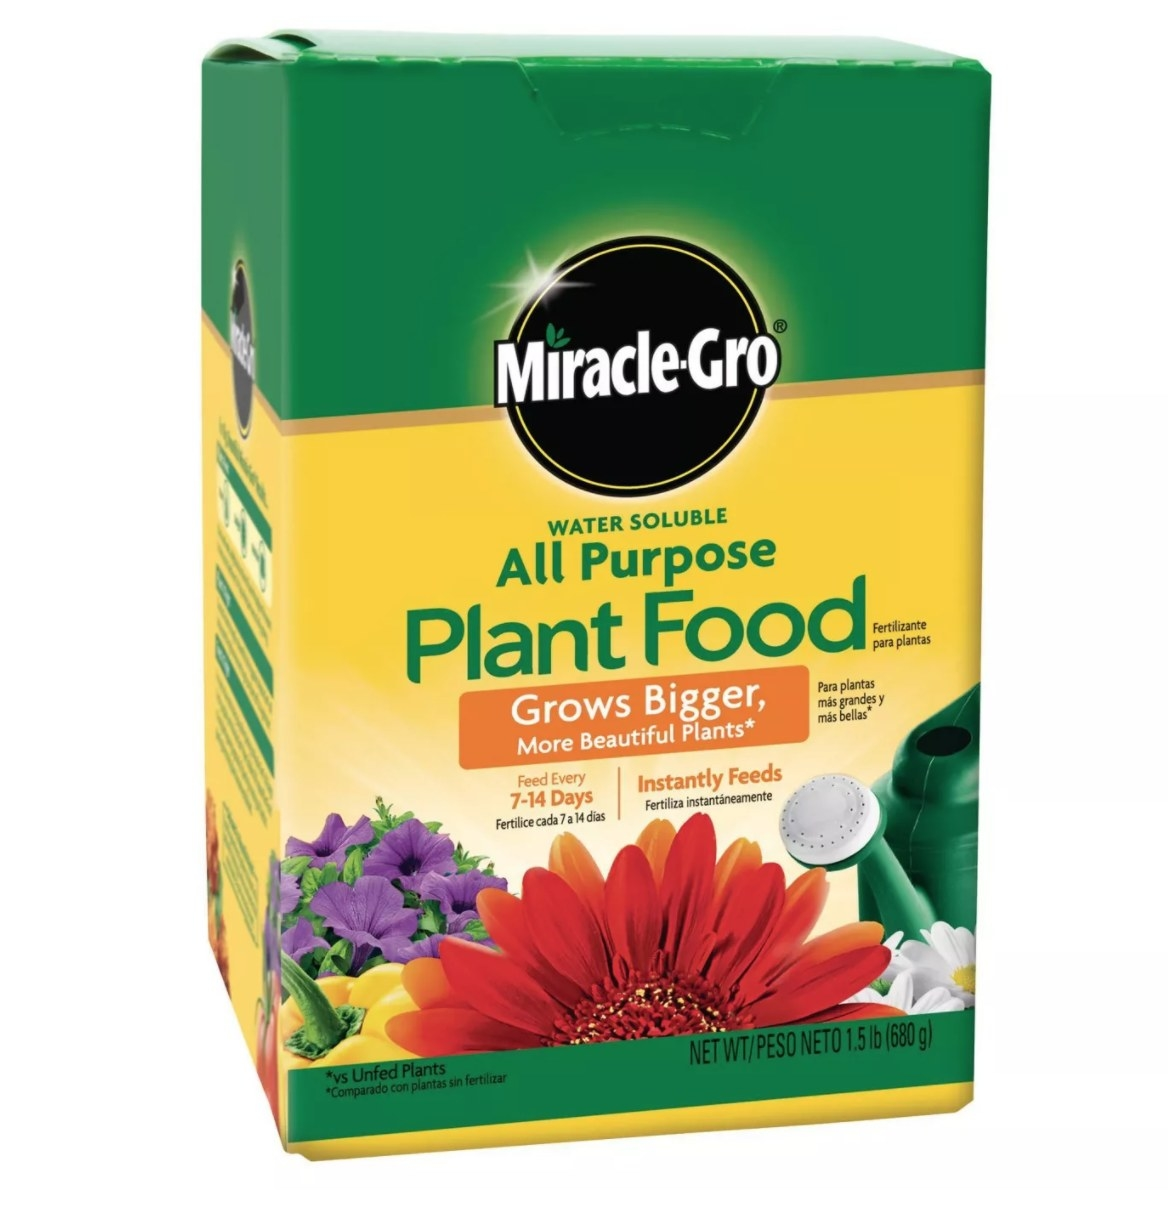 A green and yellow box of Miracle-Gro plant food